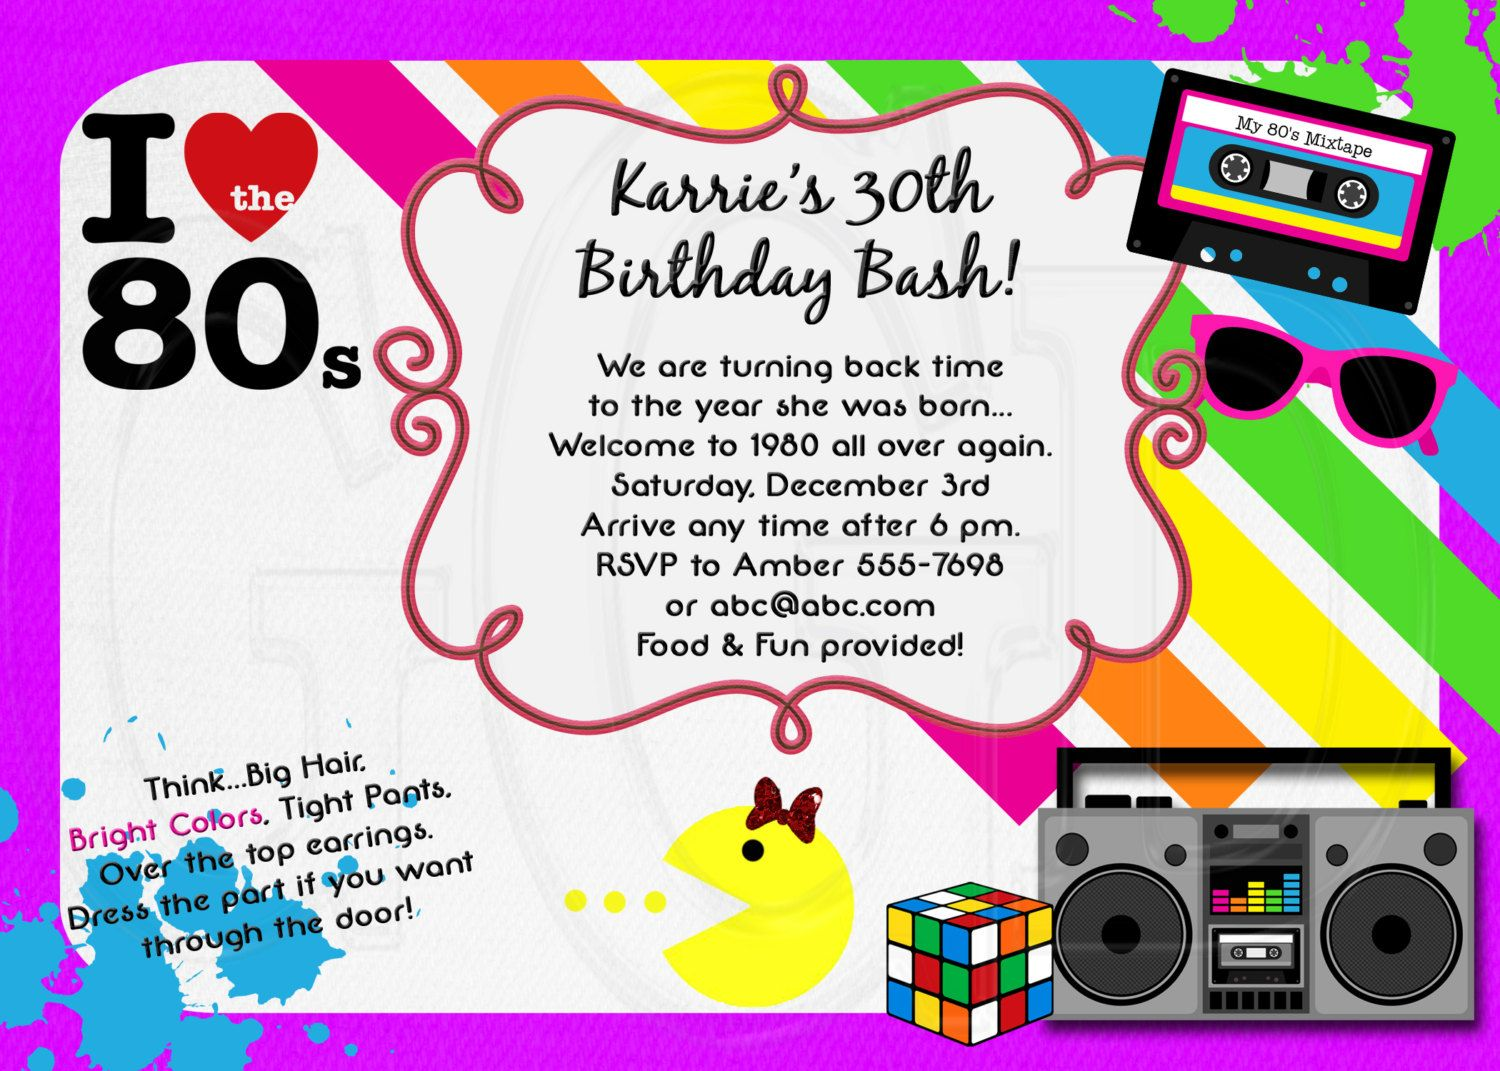 80s Party Invitation print from free online templates – 80s Theme Party Invitations